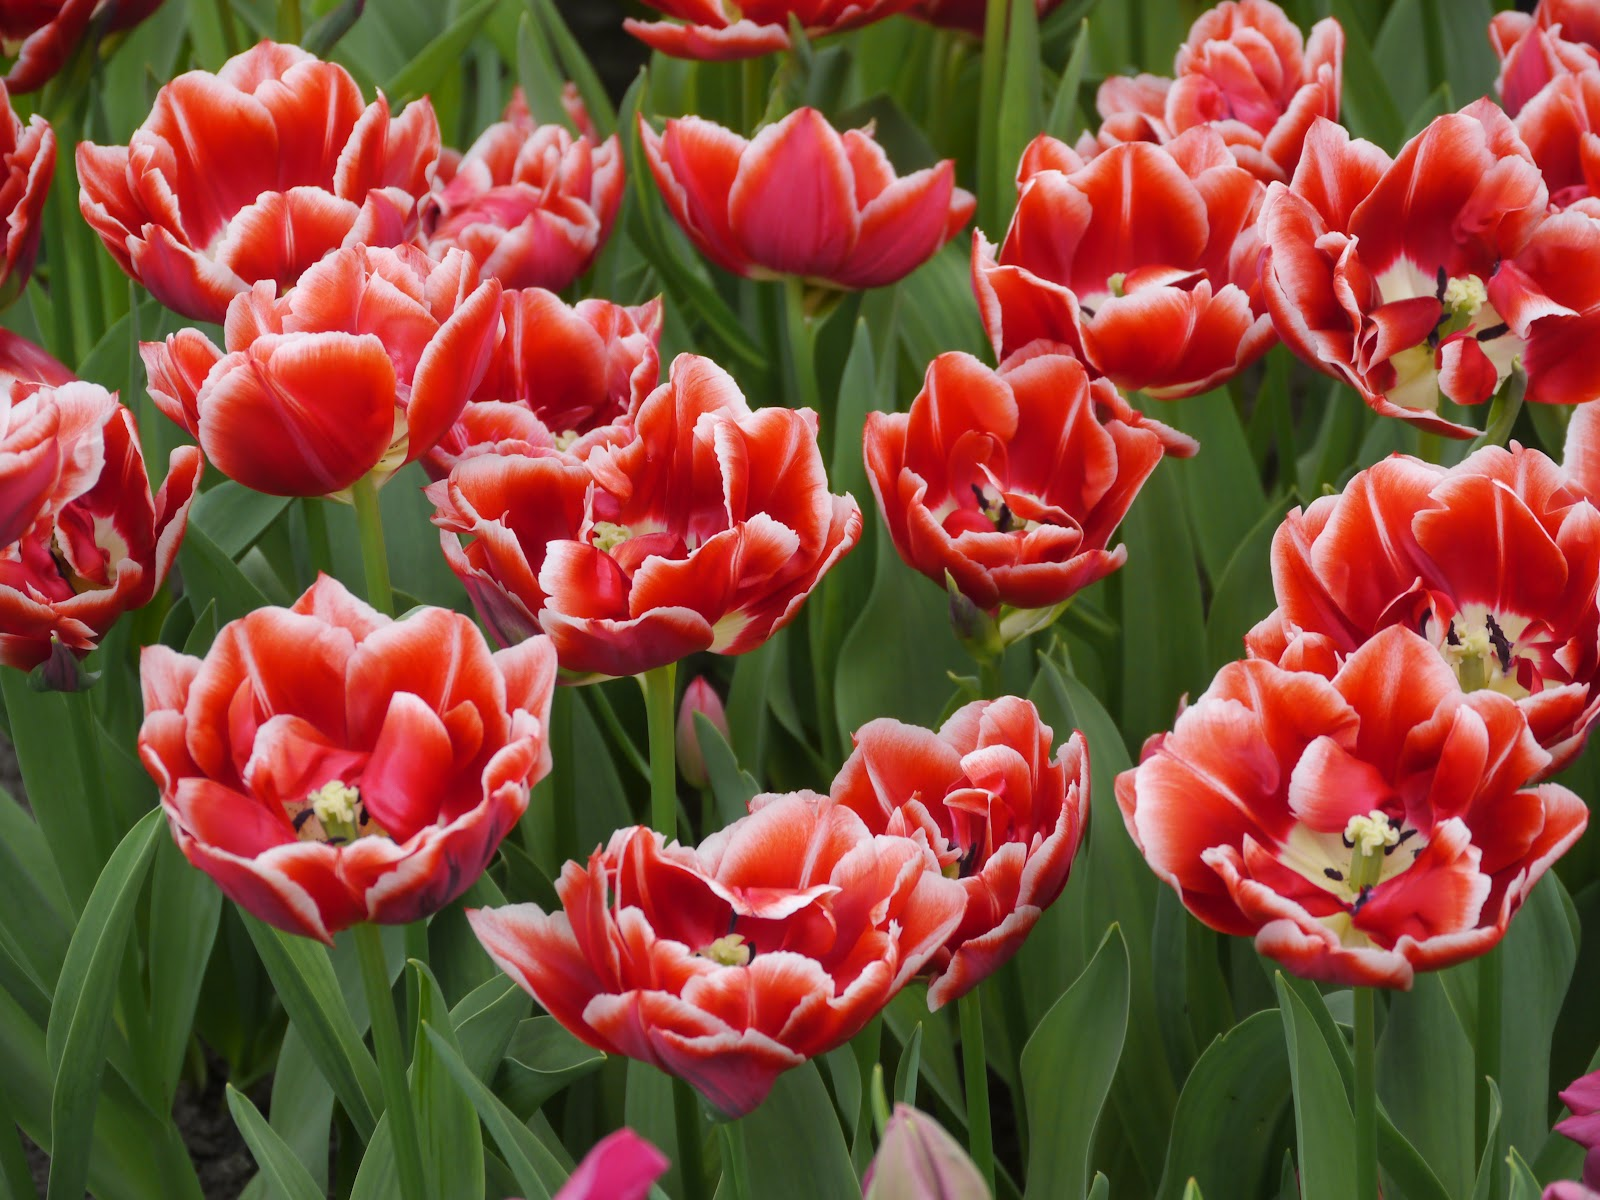 red tulips 12640